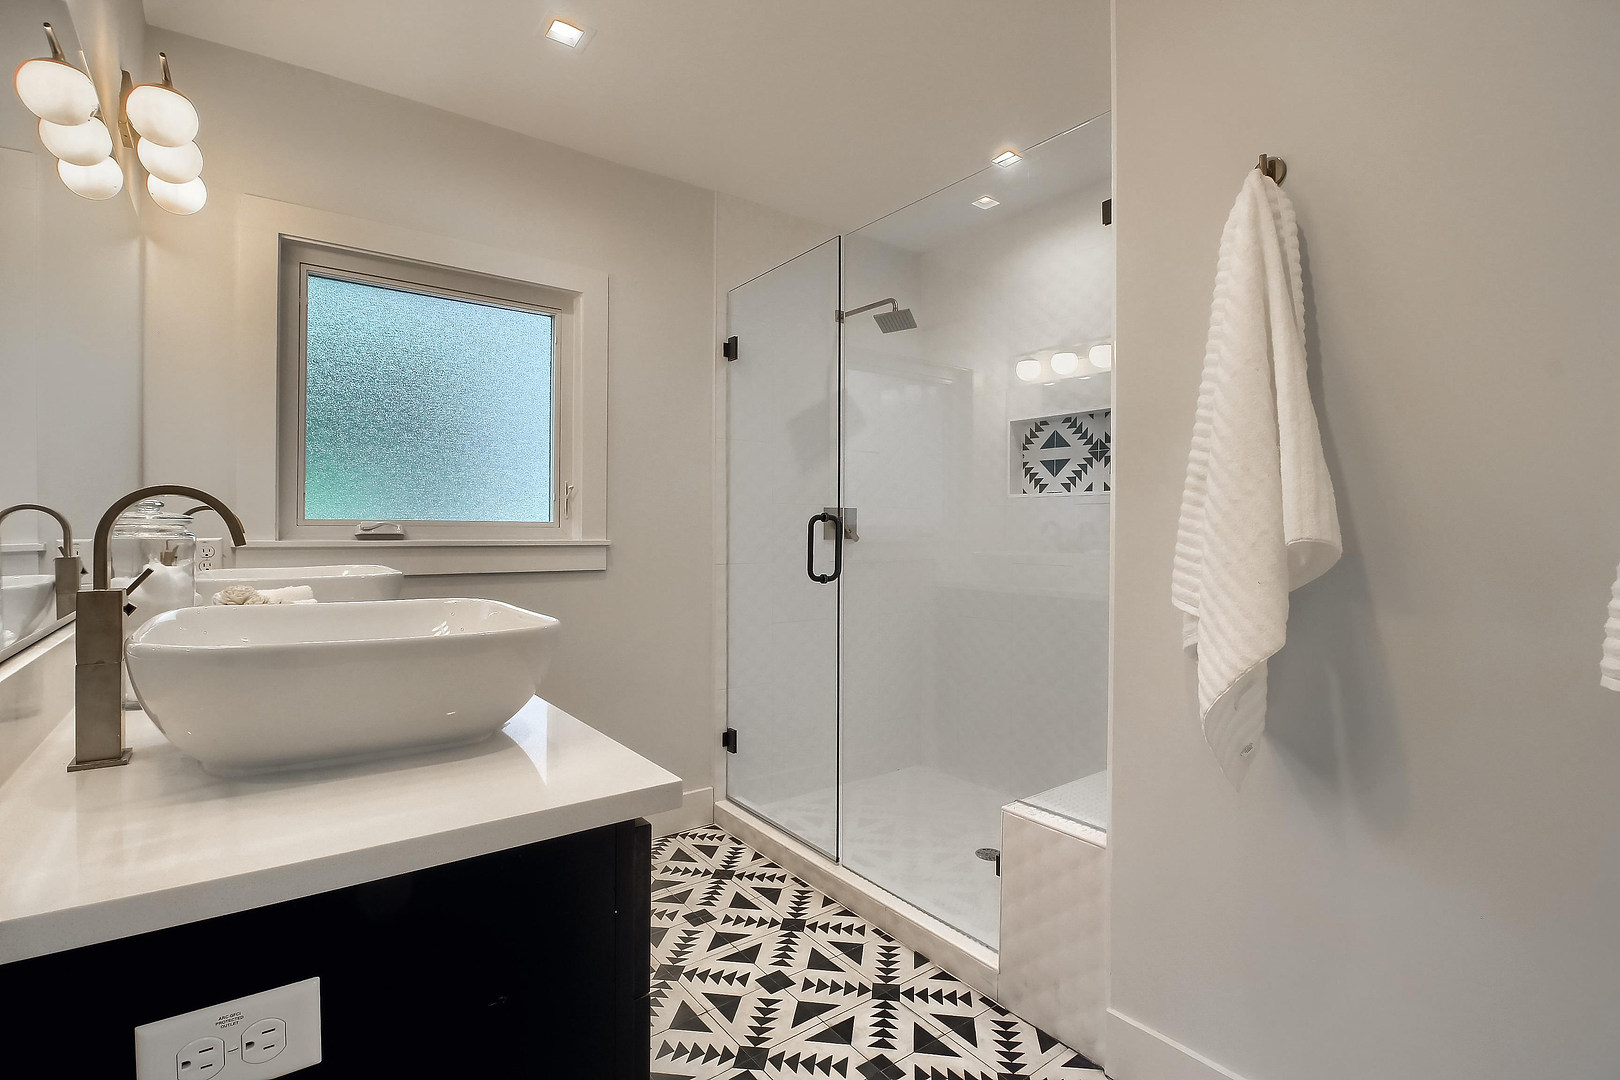 Home Renovation Master Bathroom Walk in Shower on West 29th in Austin, Texas